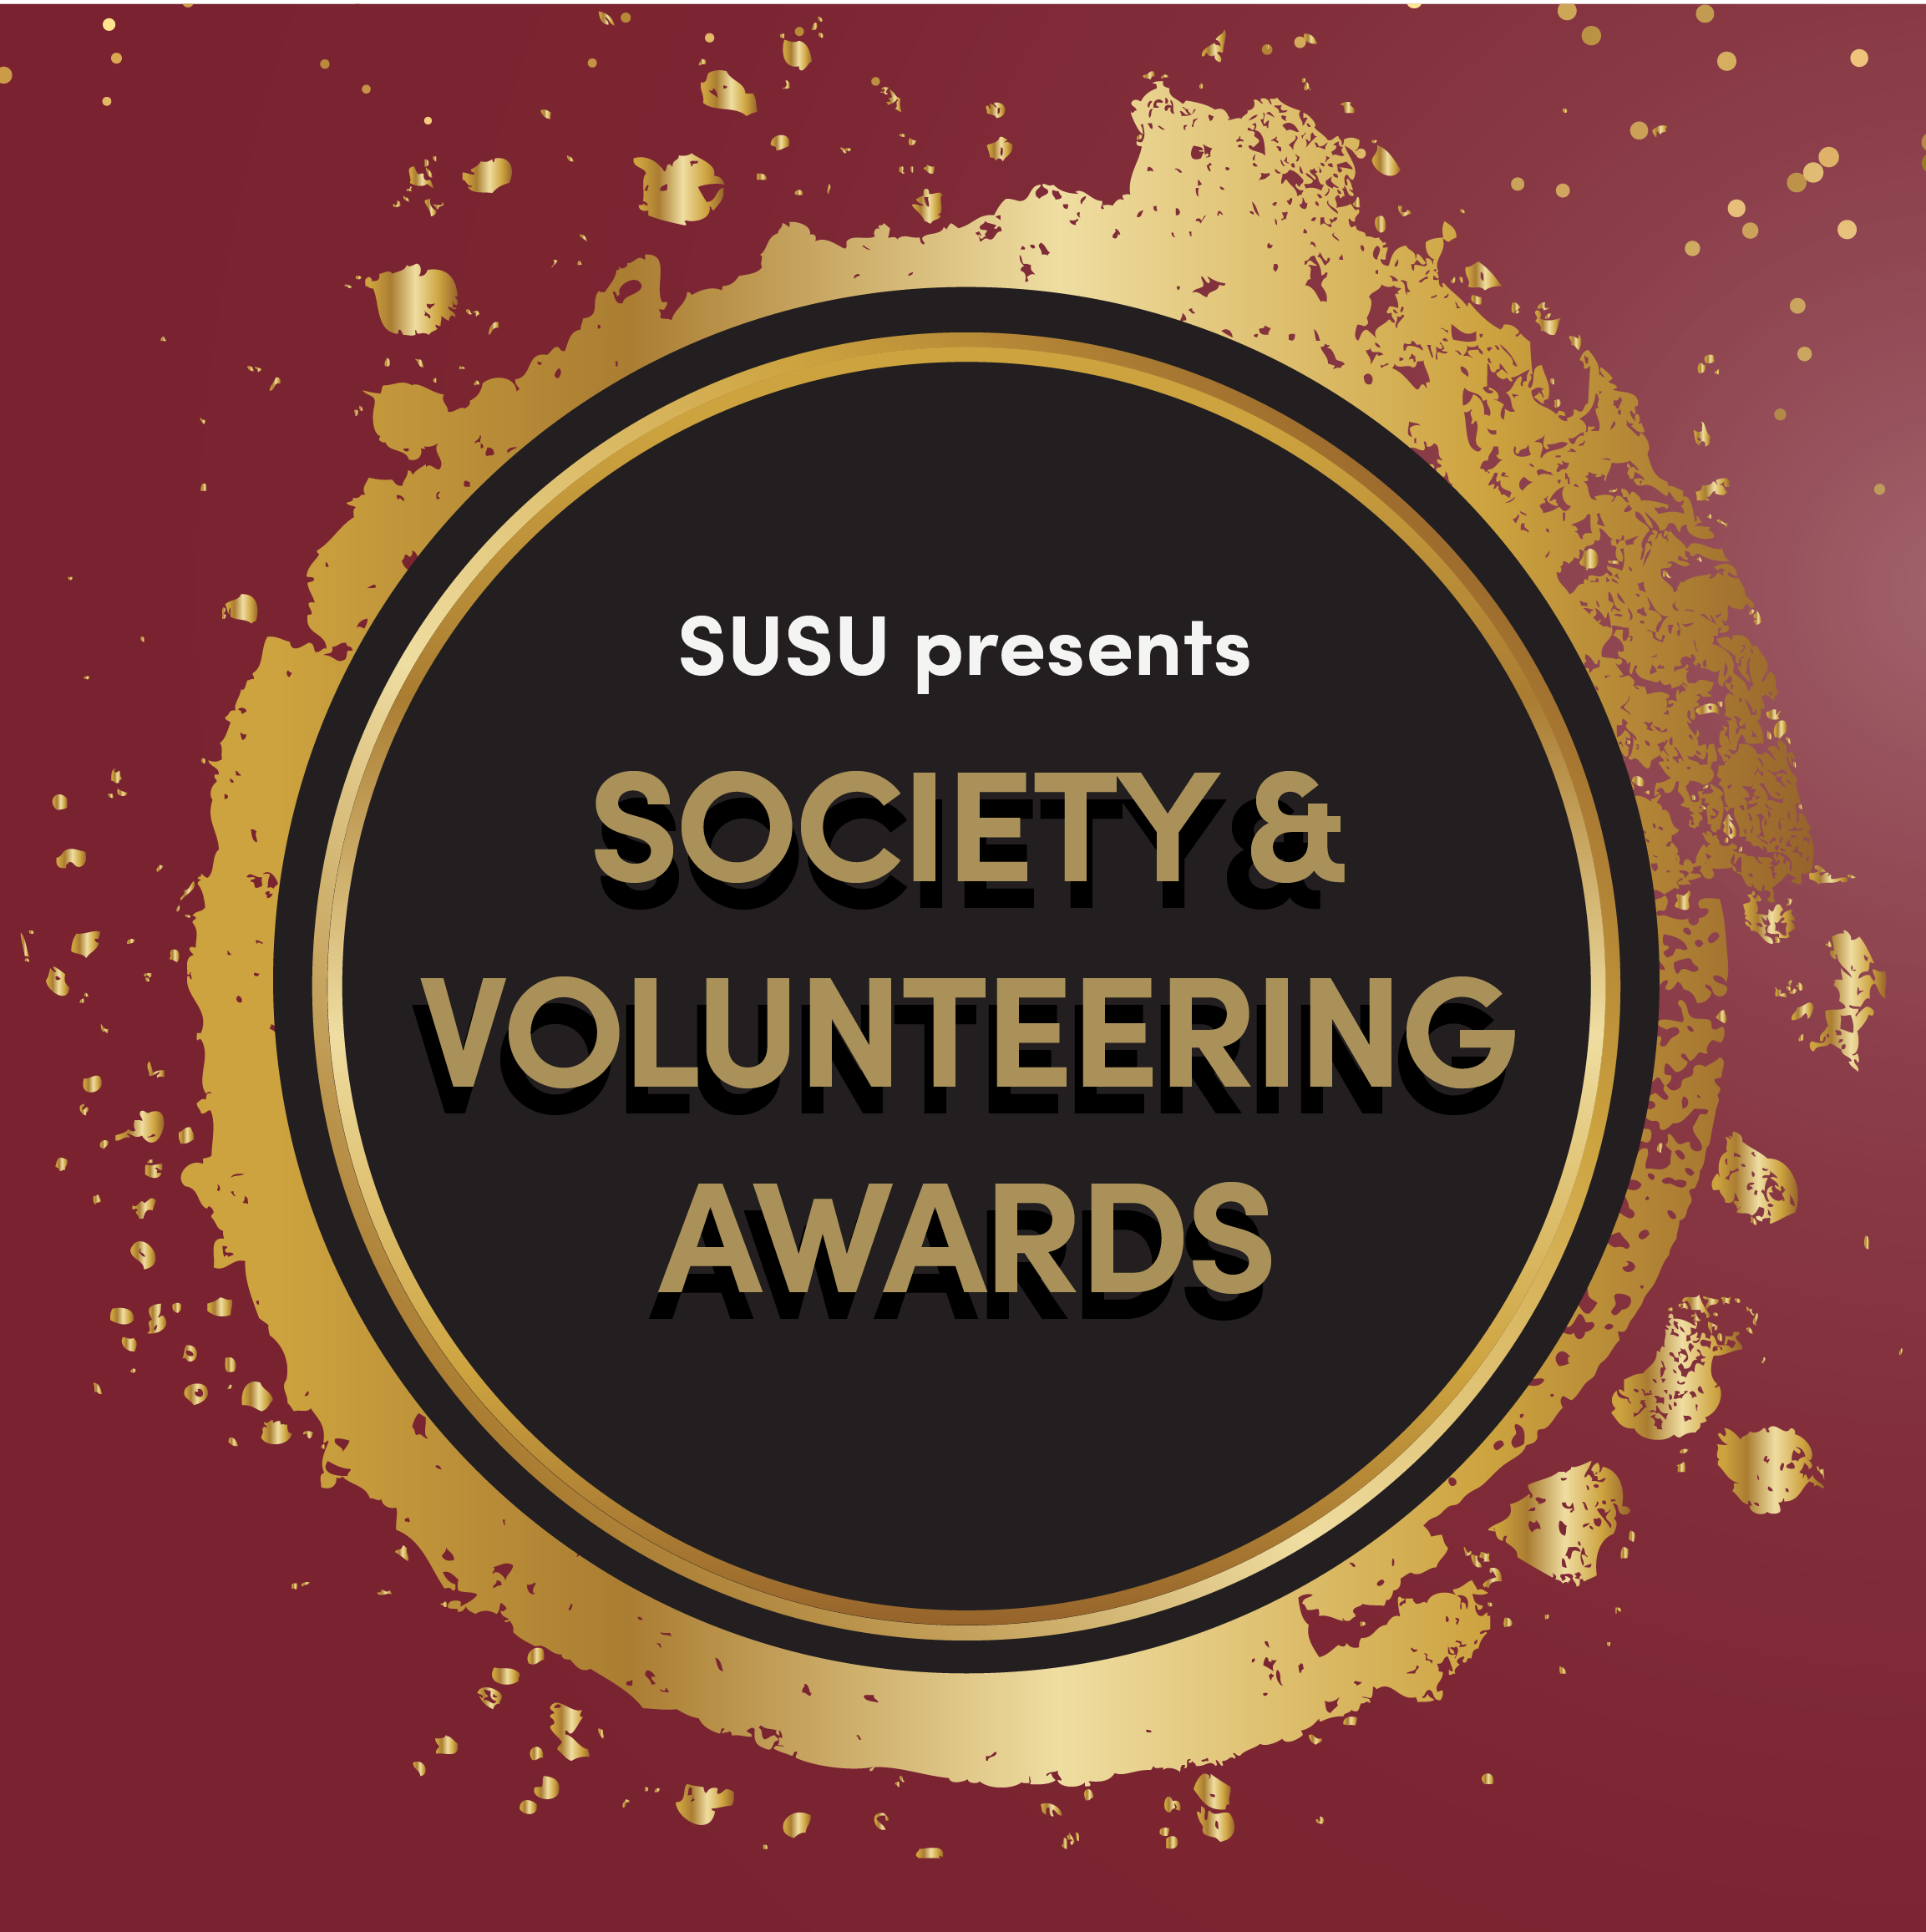 Society & Volunteering Awards 2021